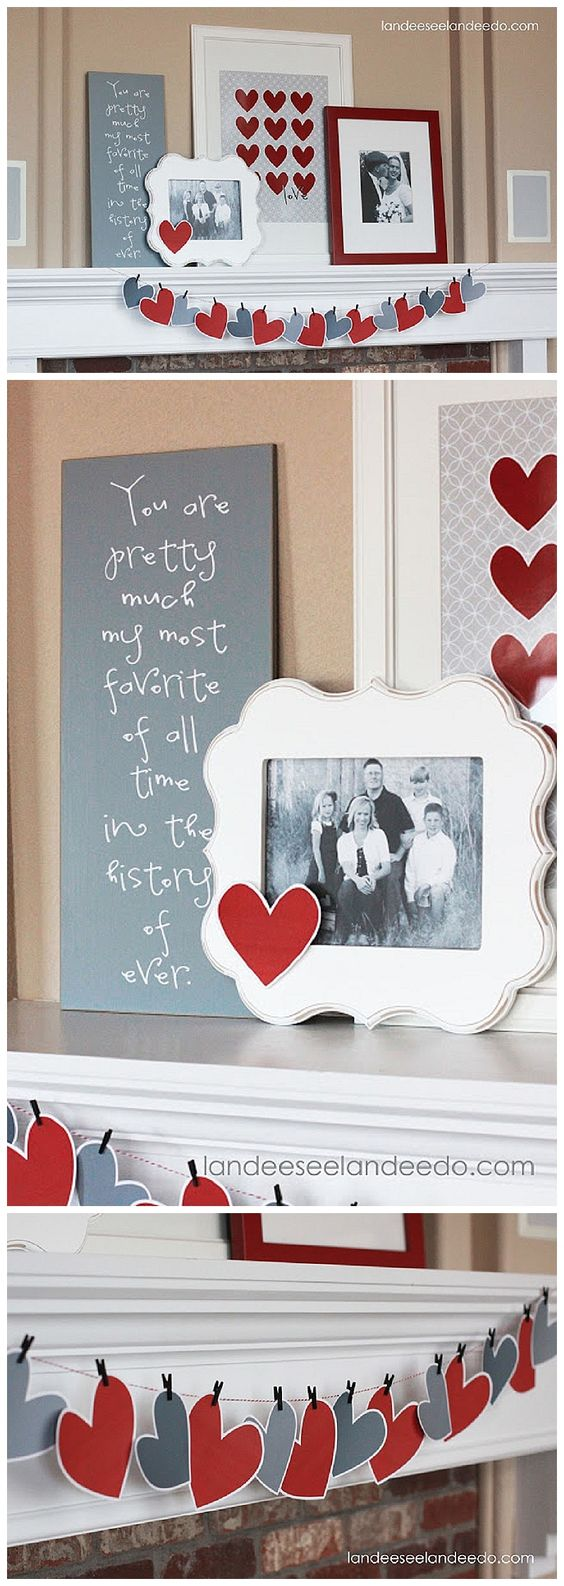 VALENTINE'S DAY MANTEL DECORATIONS AND IDEAS